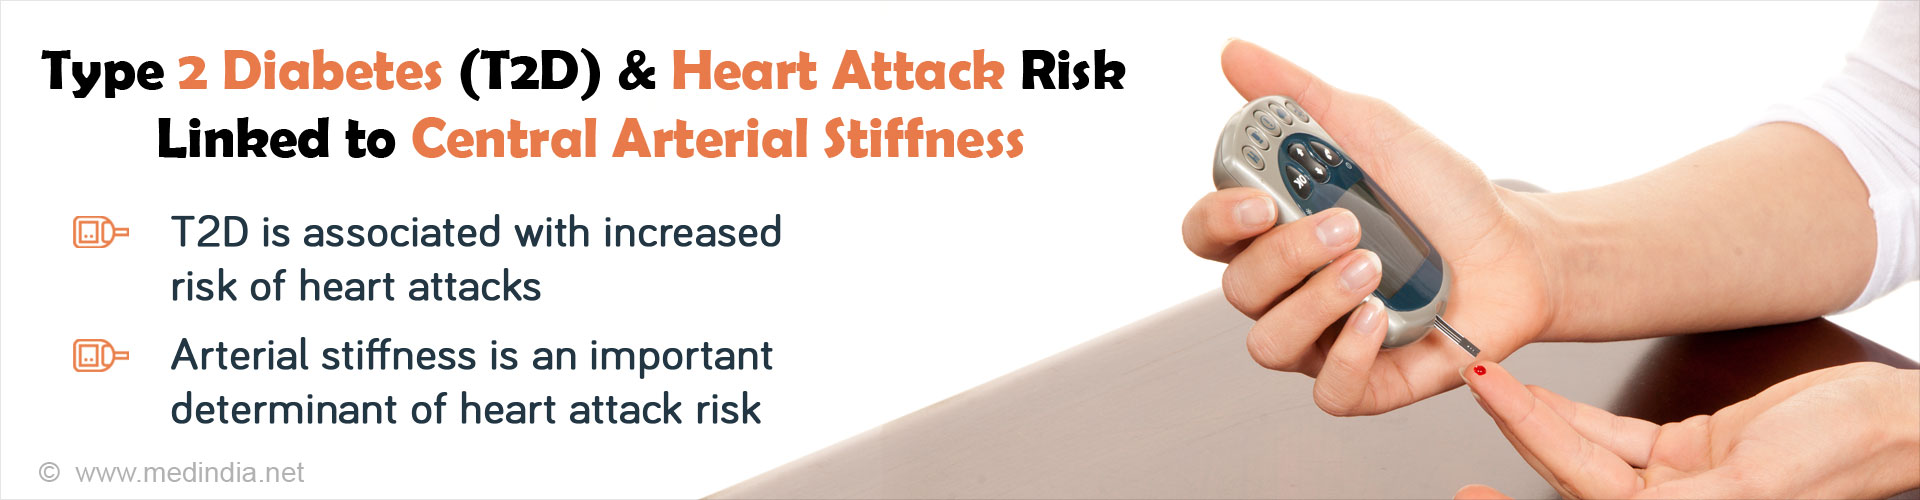 Type 2 Diabetes (T2D) & Heart Attack Risk Linked to Central Arterial Stiffness